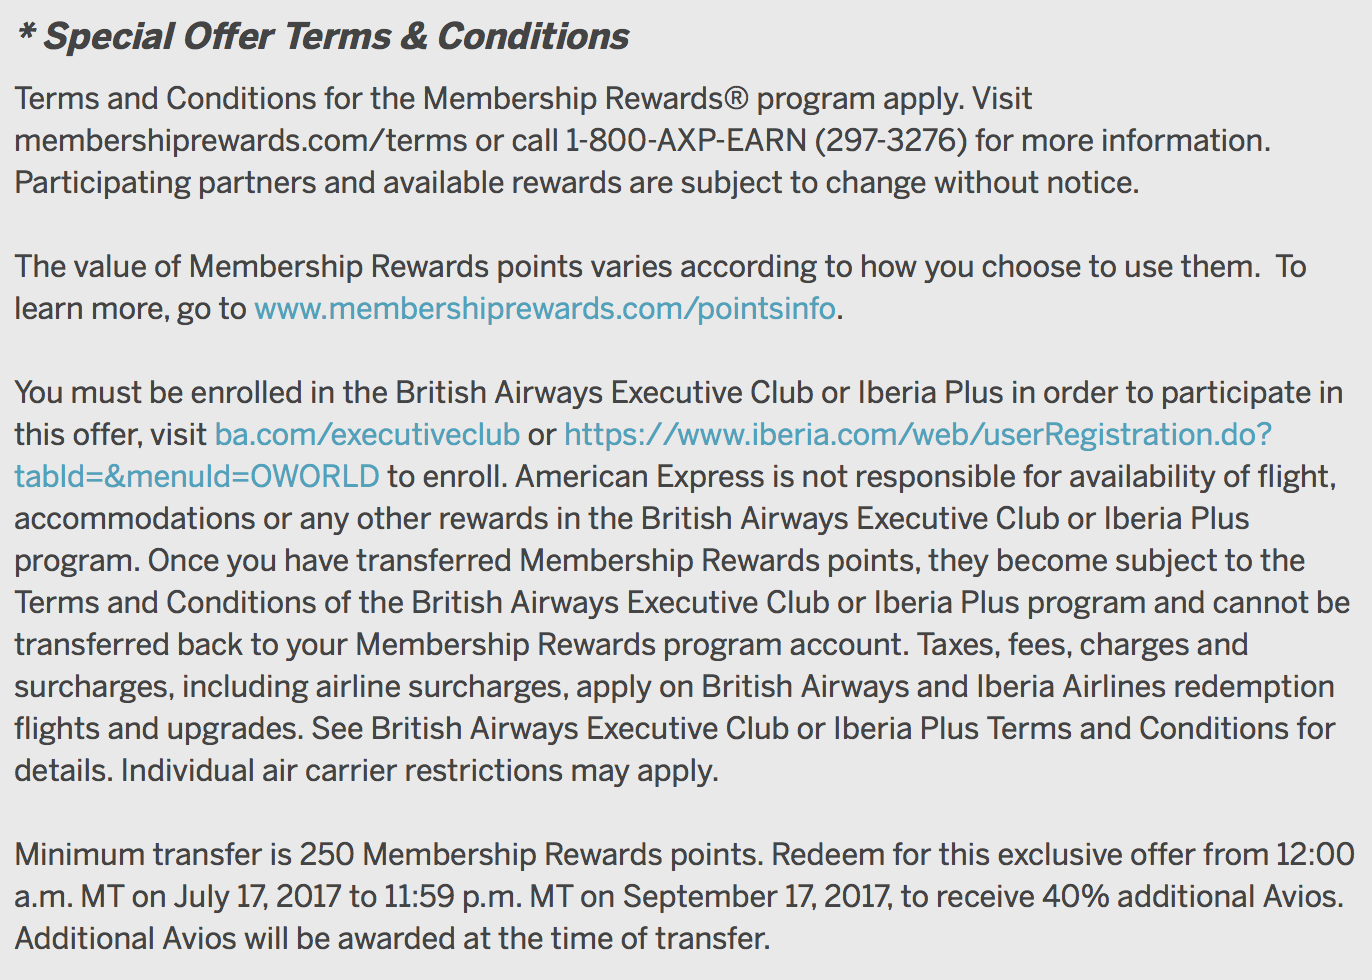 Membership Rewards to British Airways Avios 40 Percent Bonus Summer 2017 Terms & Conditions